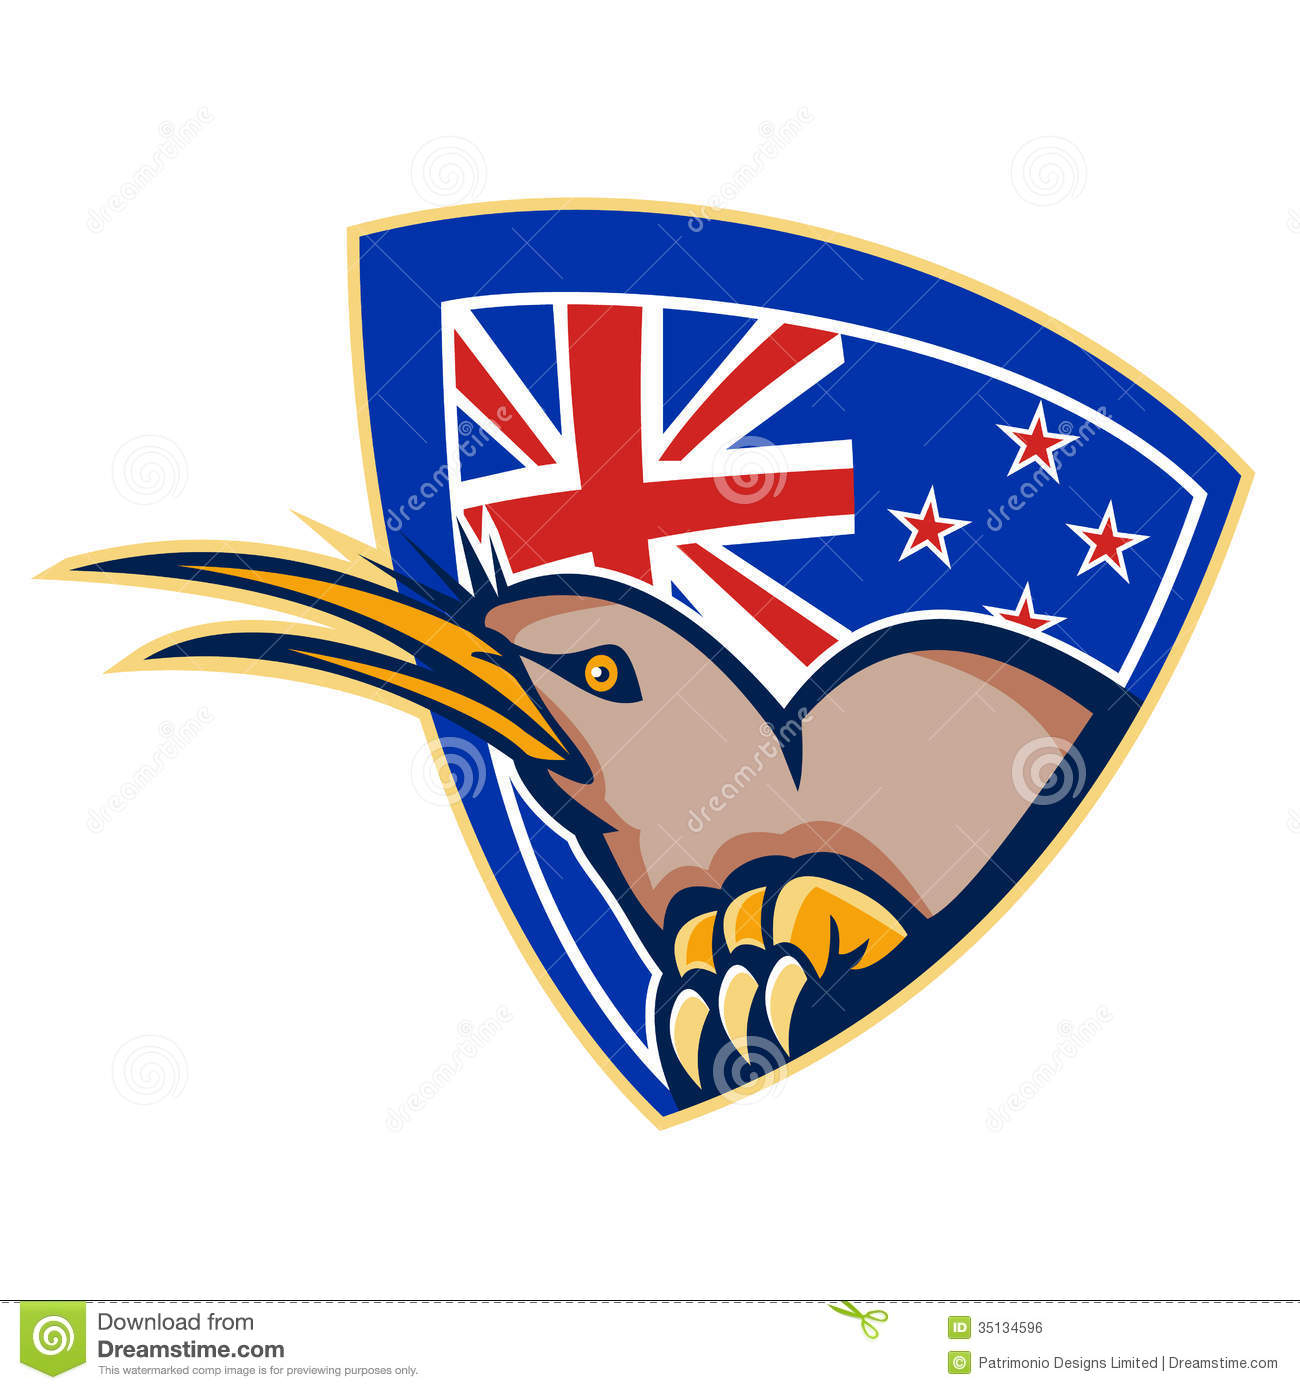 C:\Users\Asus\Desktop\kiwi-bird-new-zealand-flag-shield-retro-illustration-angry-head-viewed-side-background-set-inside-crest-done-35134596.jpg